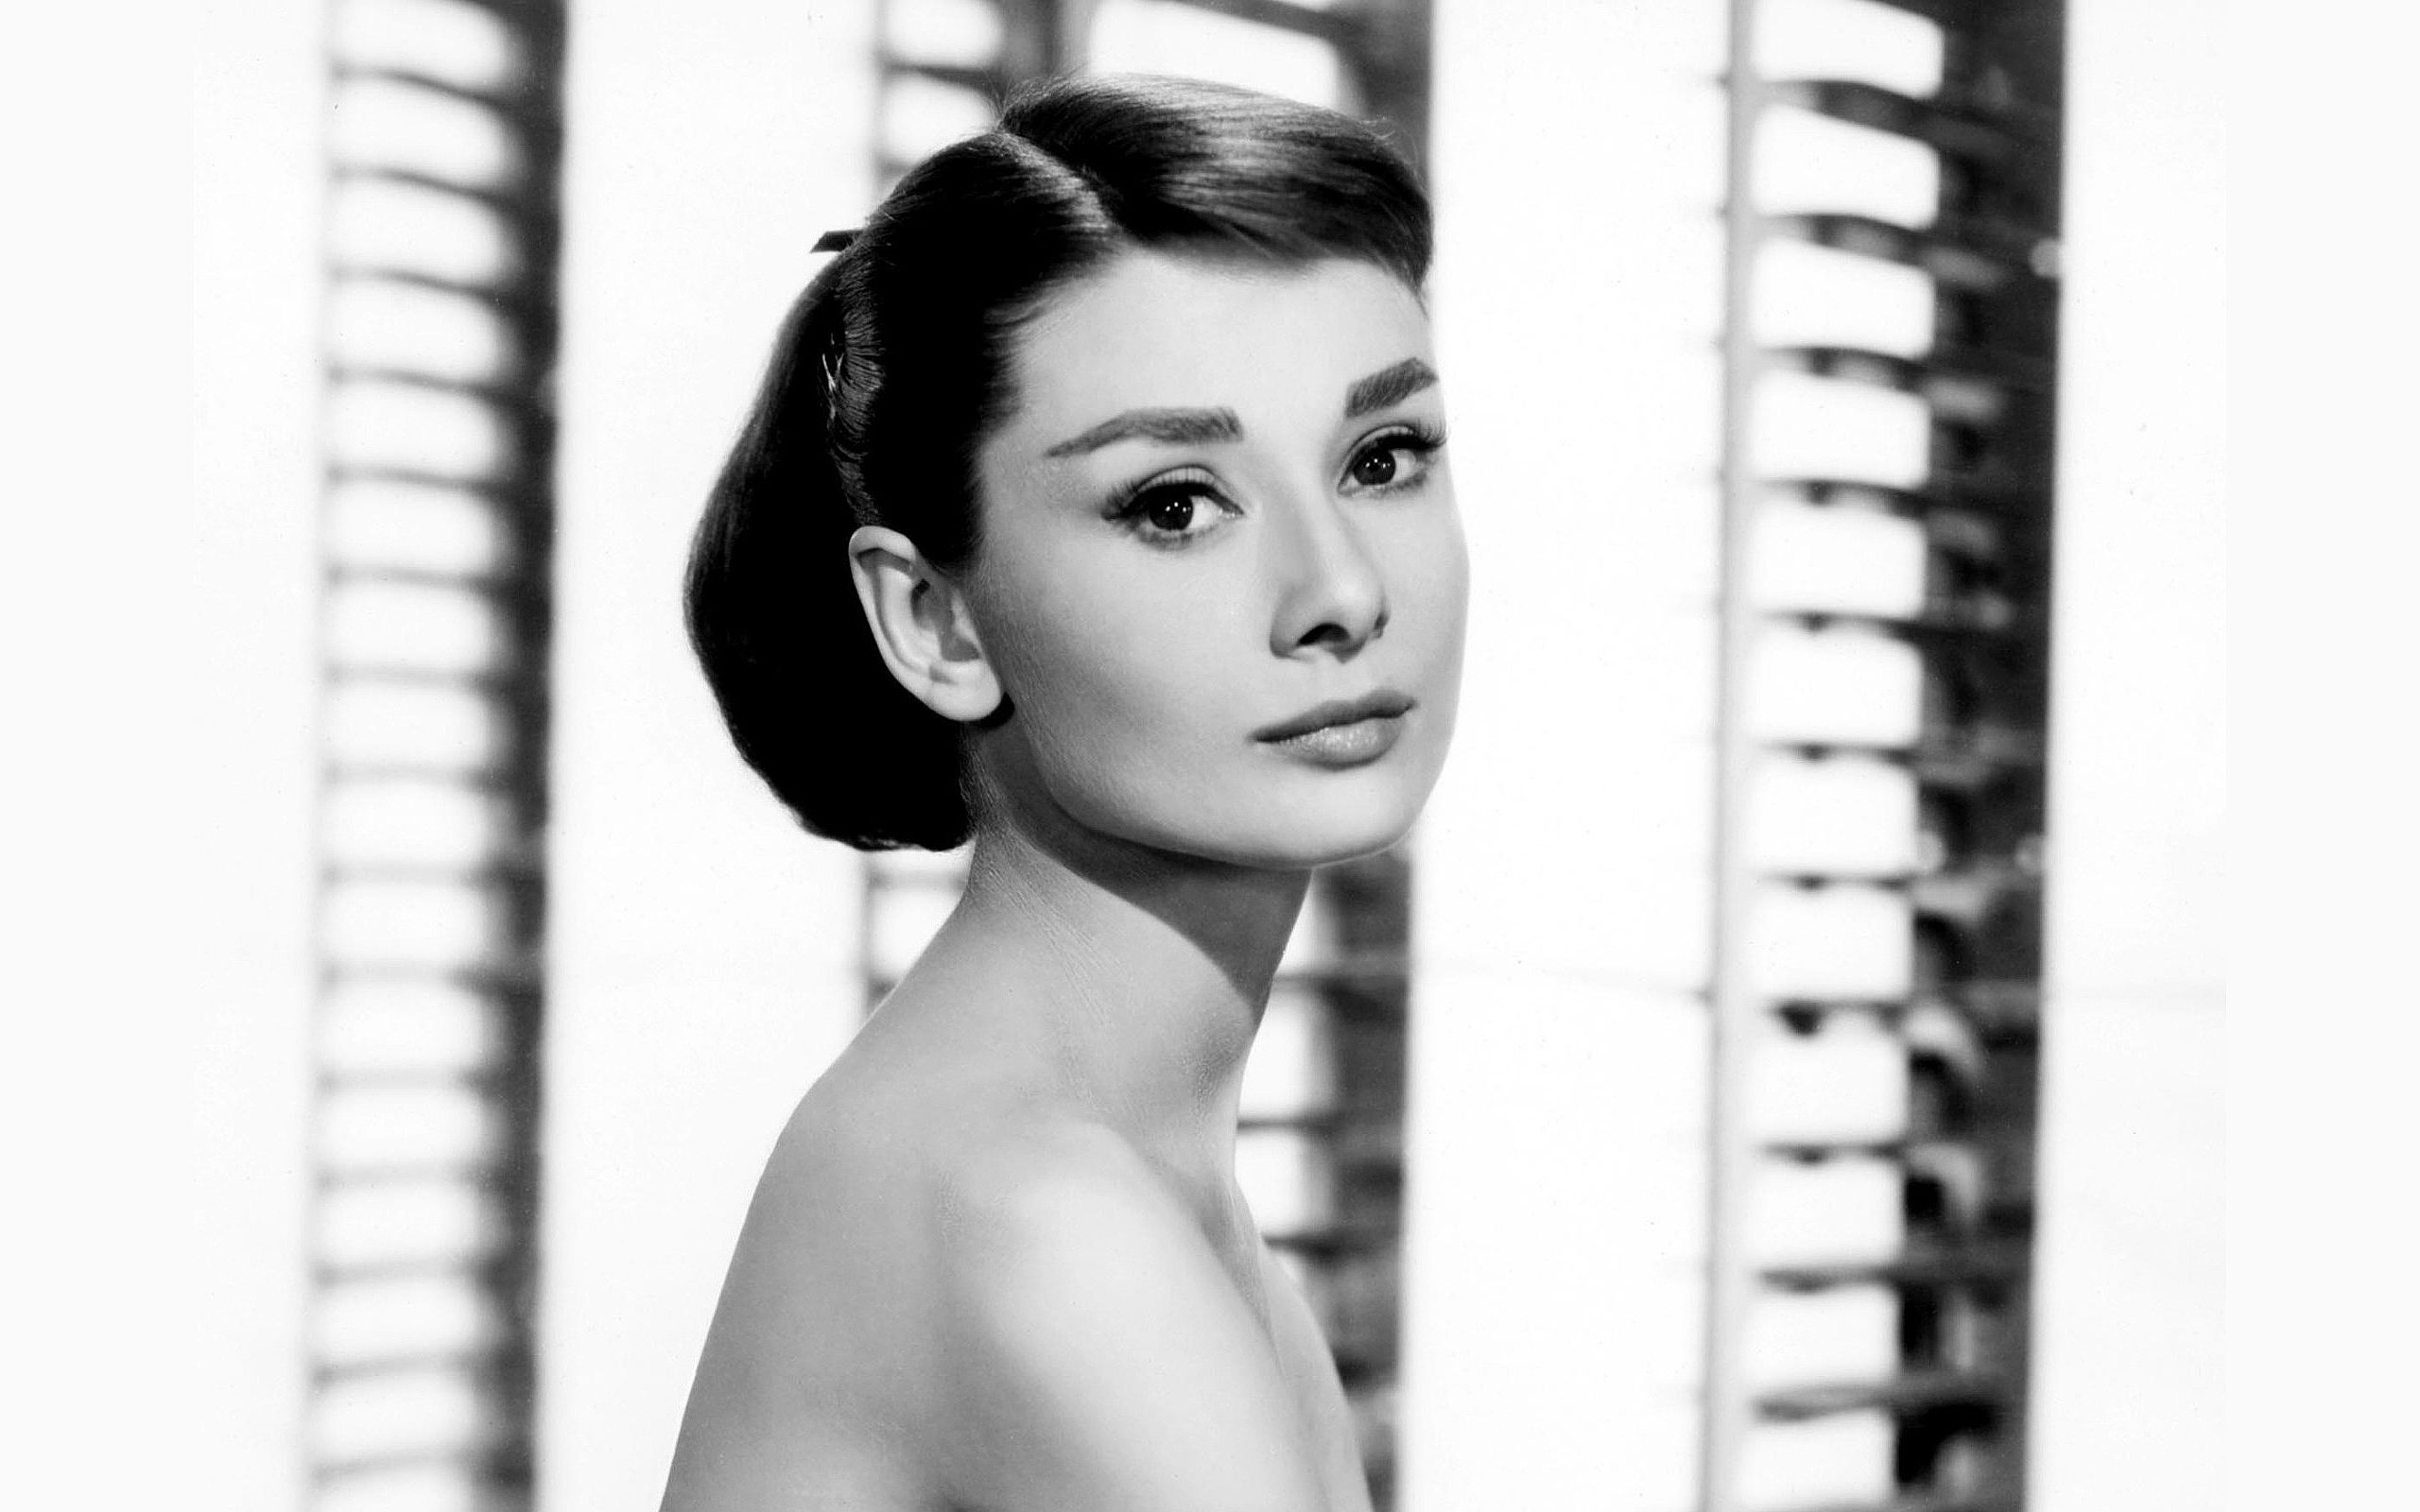 audrey-hepburn-celebrity-hd-wallpaper-2560x1600-8419